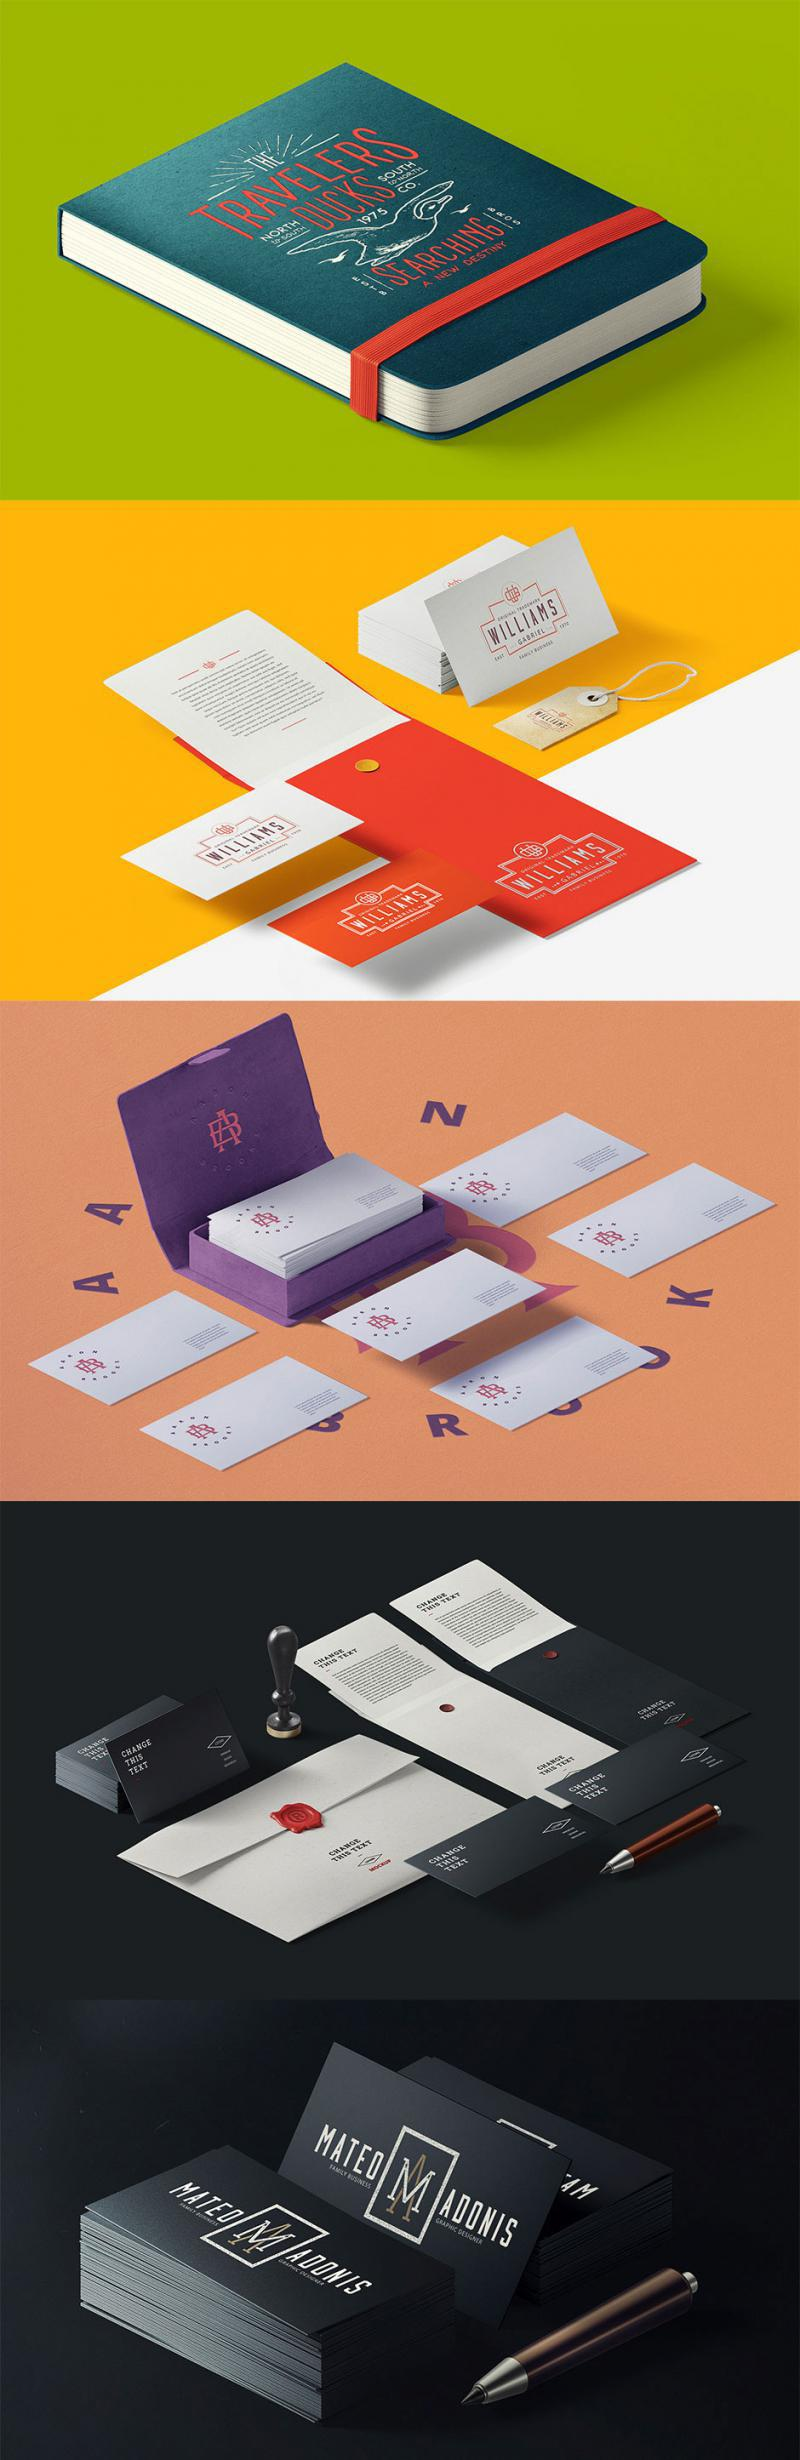 Cards and Envelopes Mockups